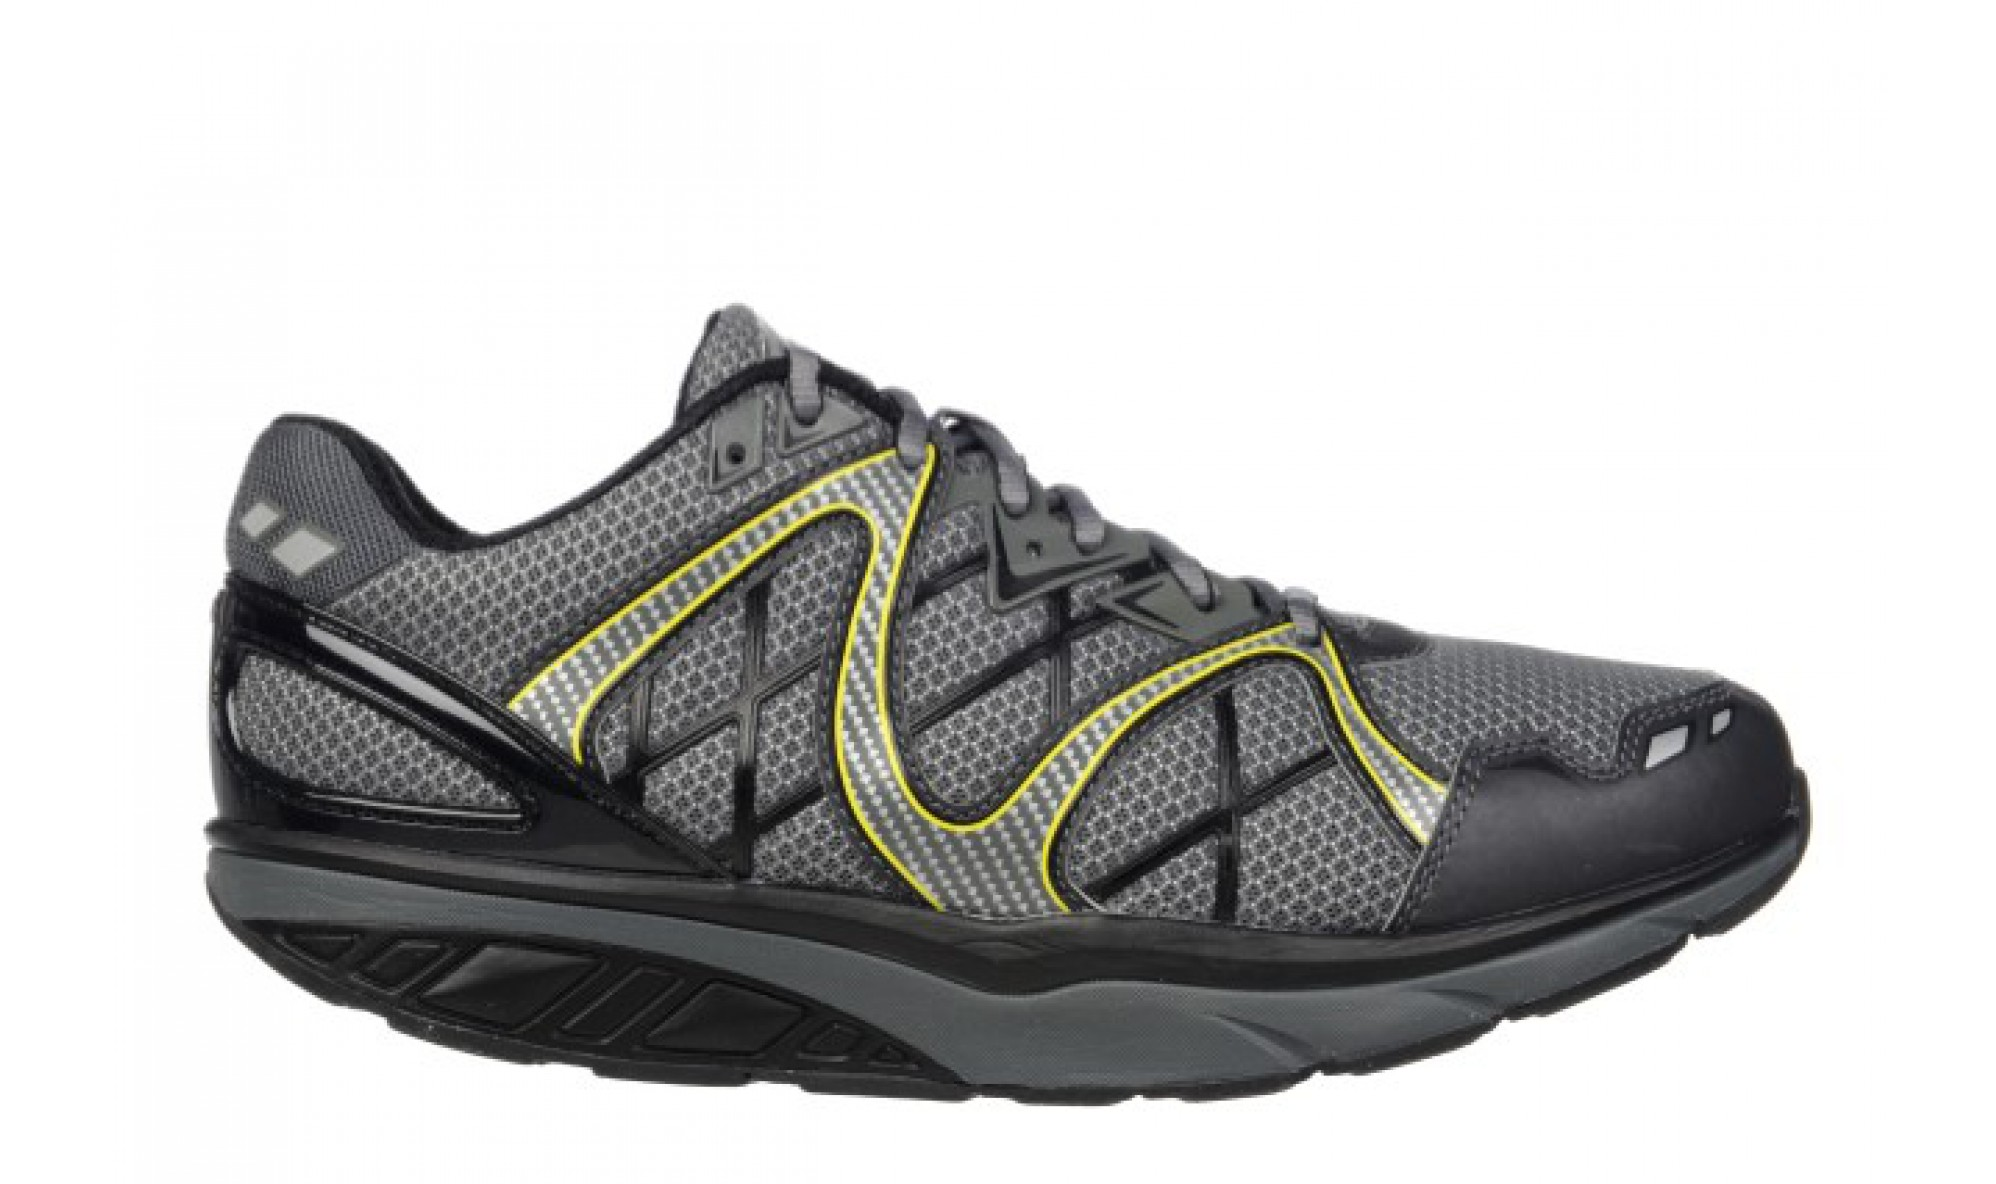 MBT Men's Simba 6 Black / Volcano Gray / Yellow Lime